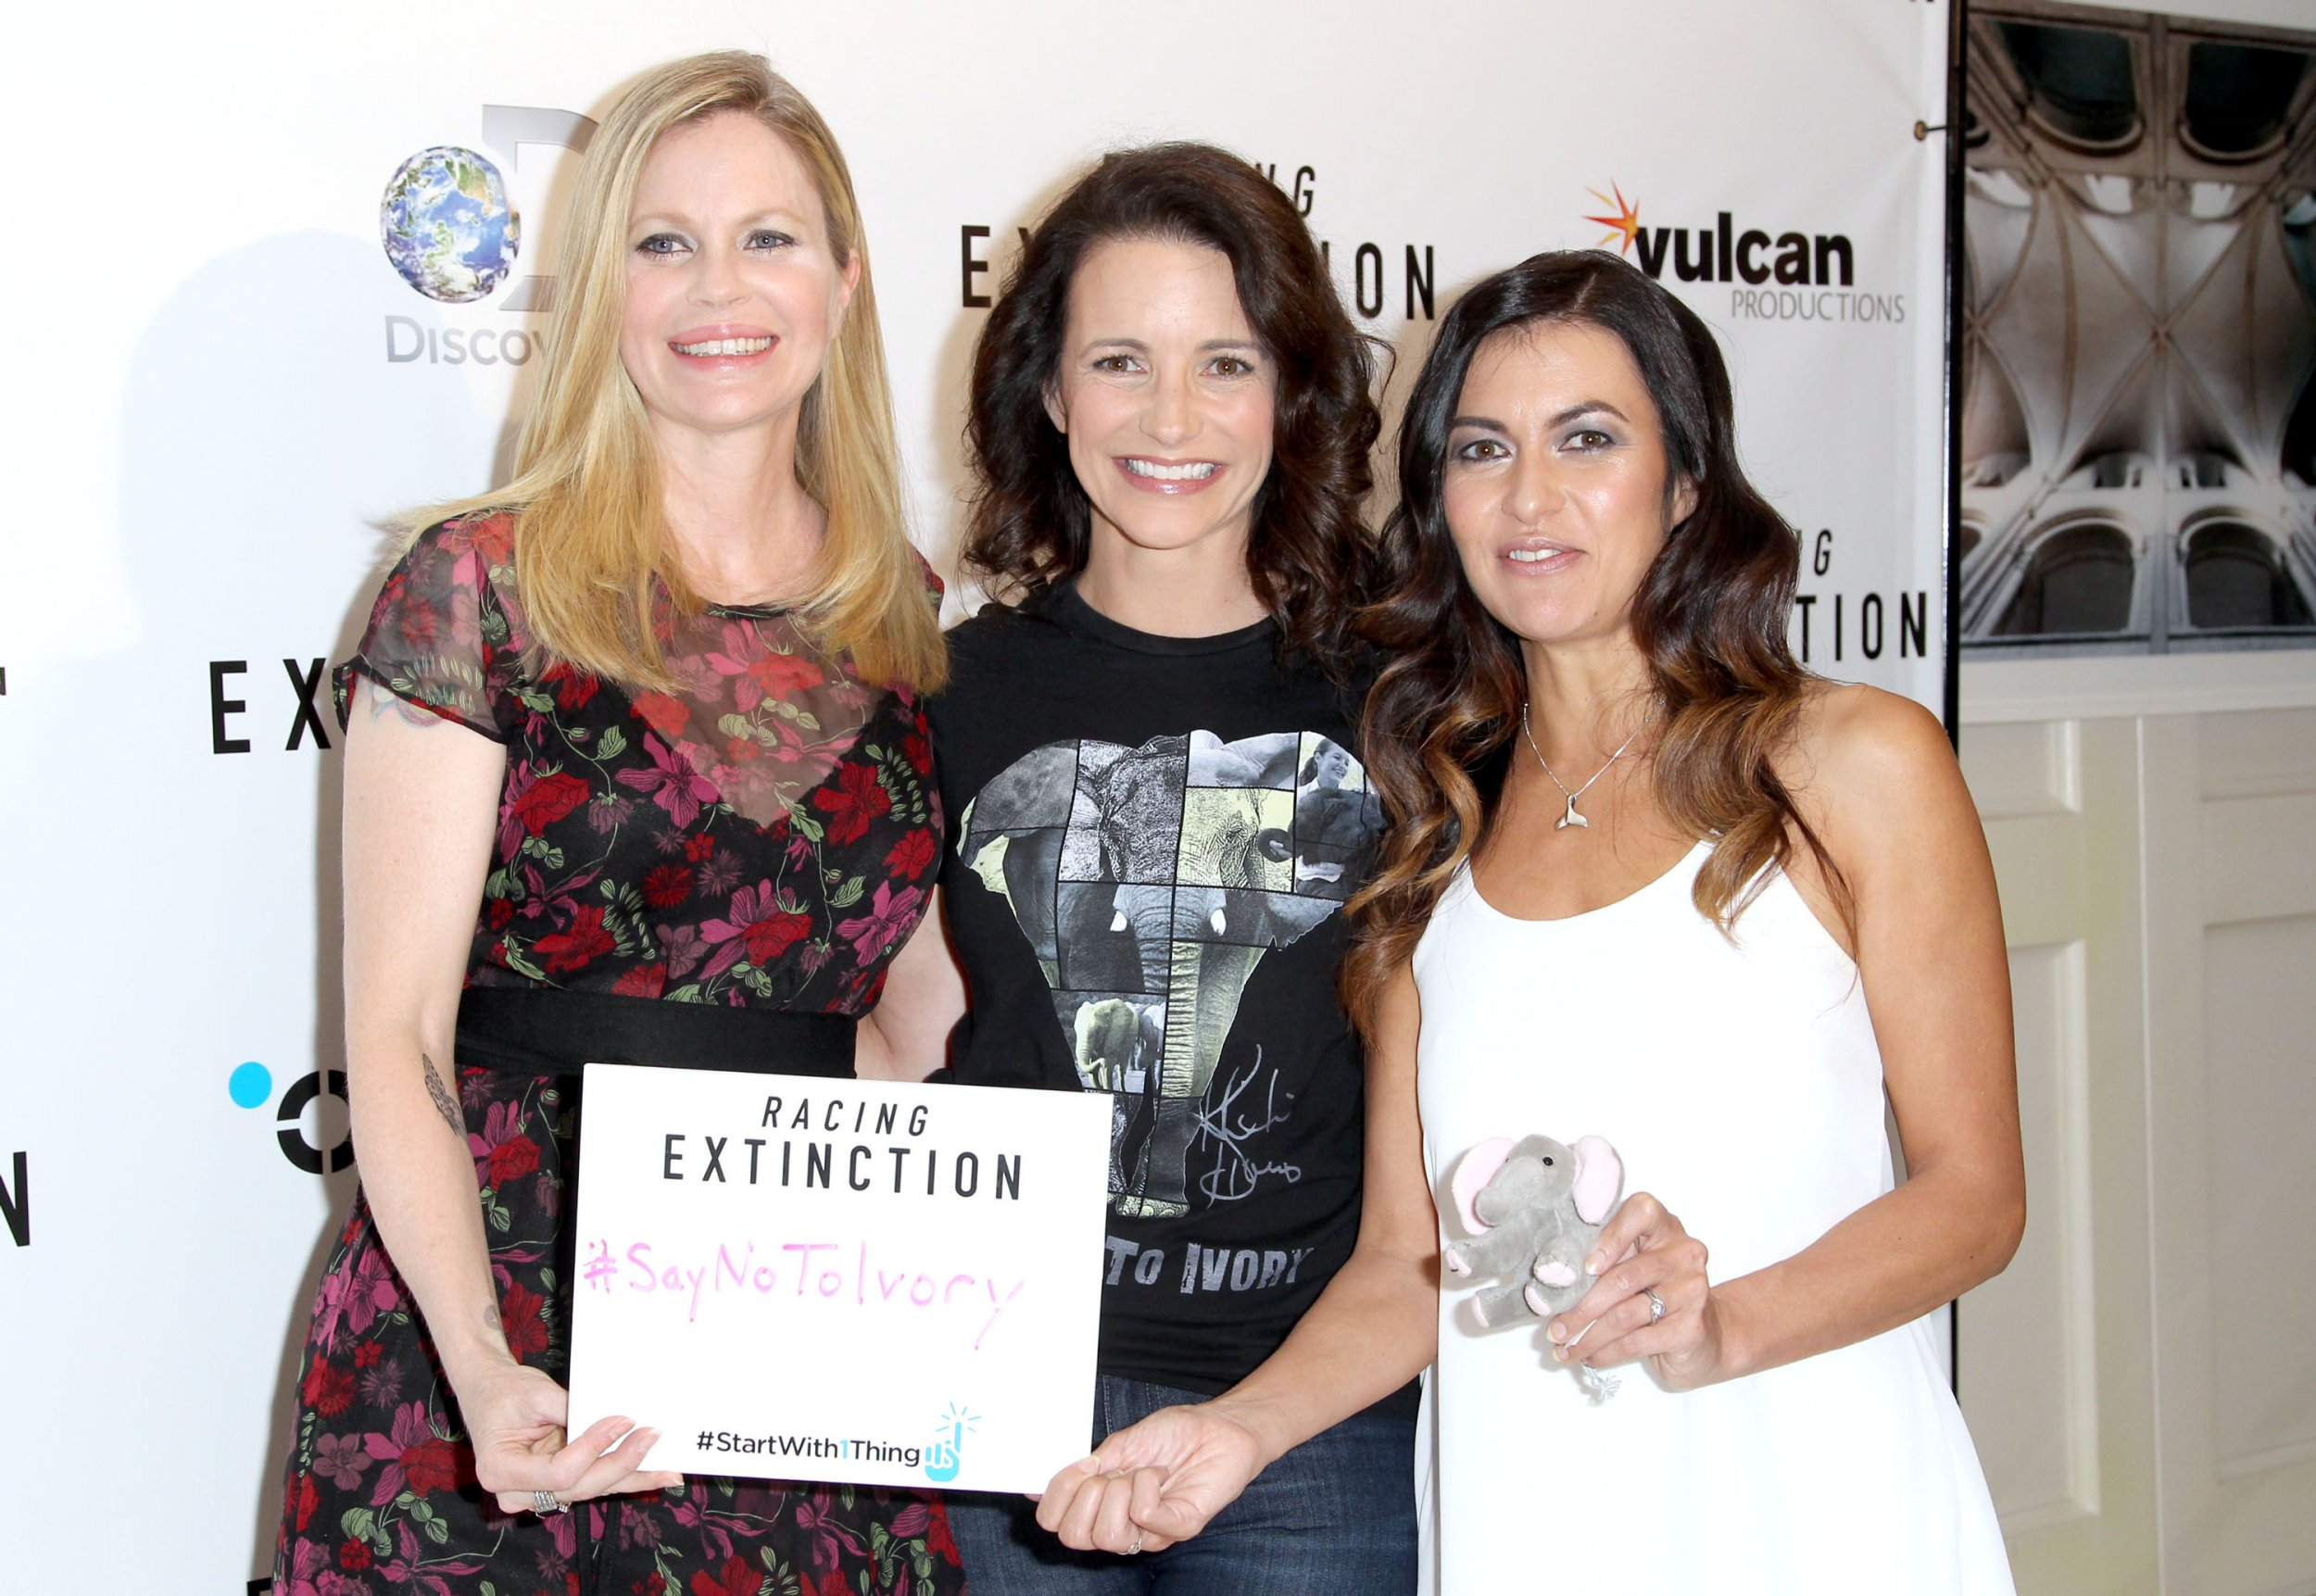 Actresses Kristin Bauer van Straten, left, and Kristin Davis, center, and racing driver Leilani Munter, right, at The London West Hollywood, California.